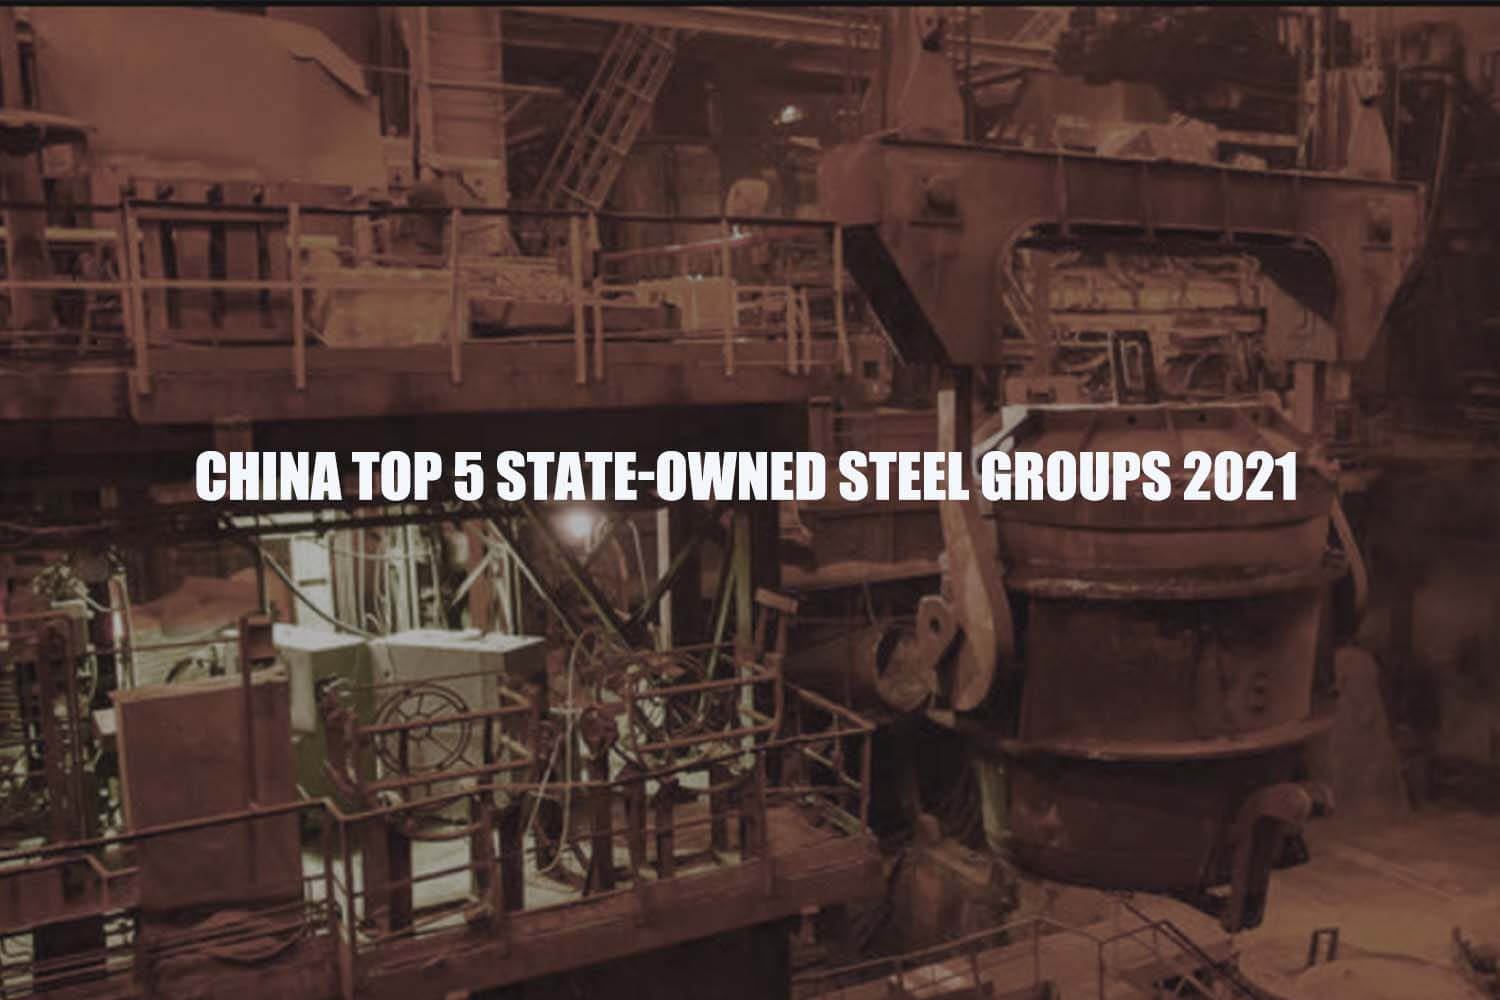 china-top-5-state-owned-steel-groups-2021